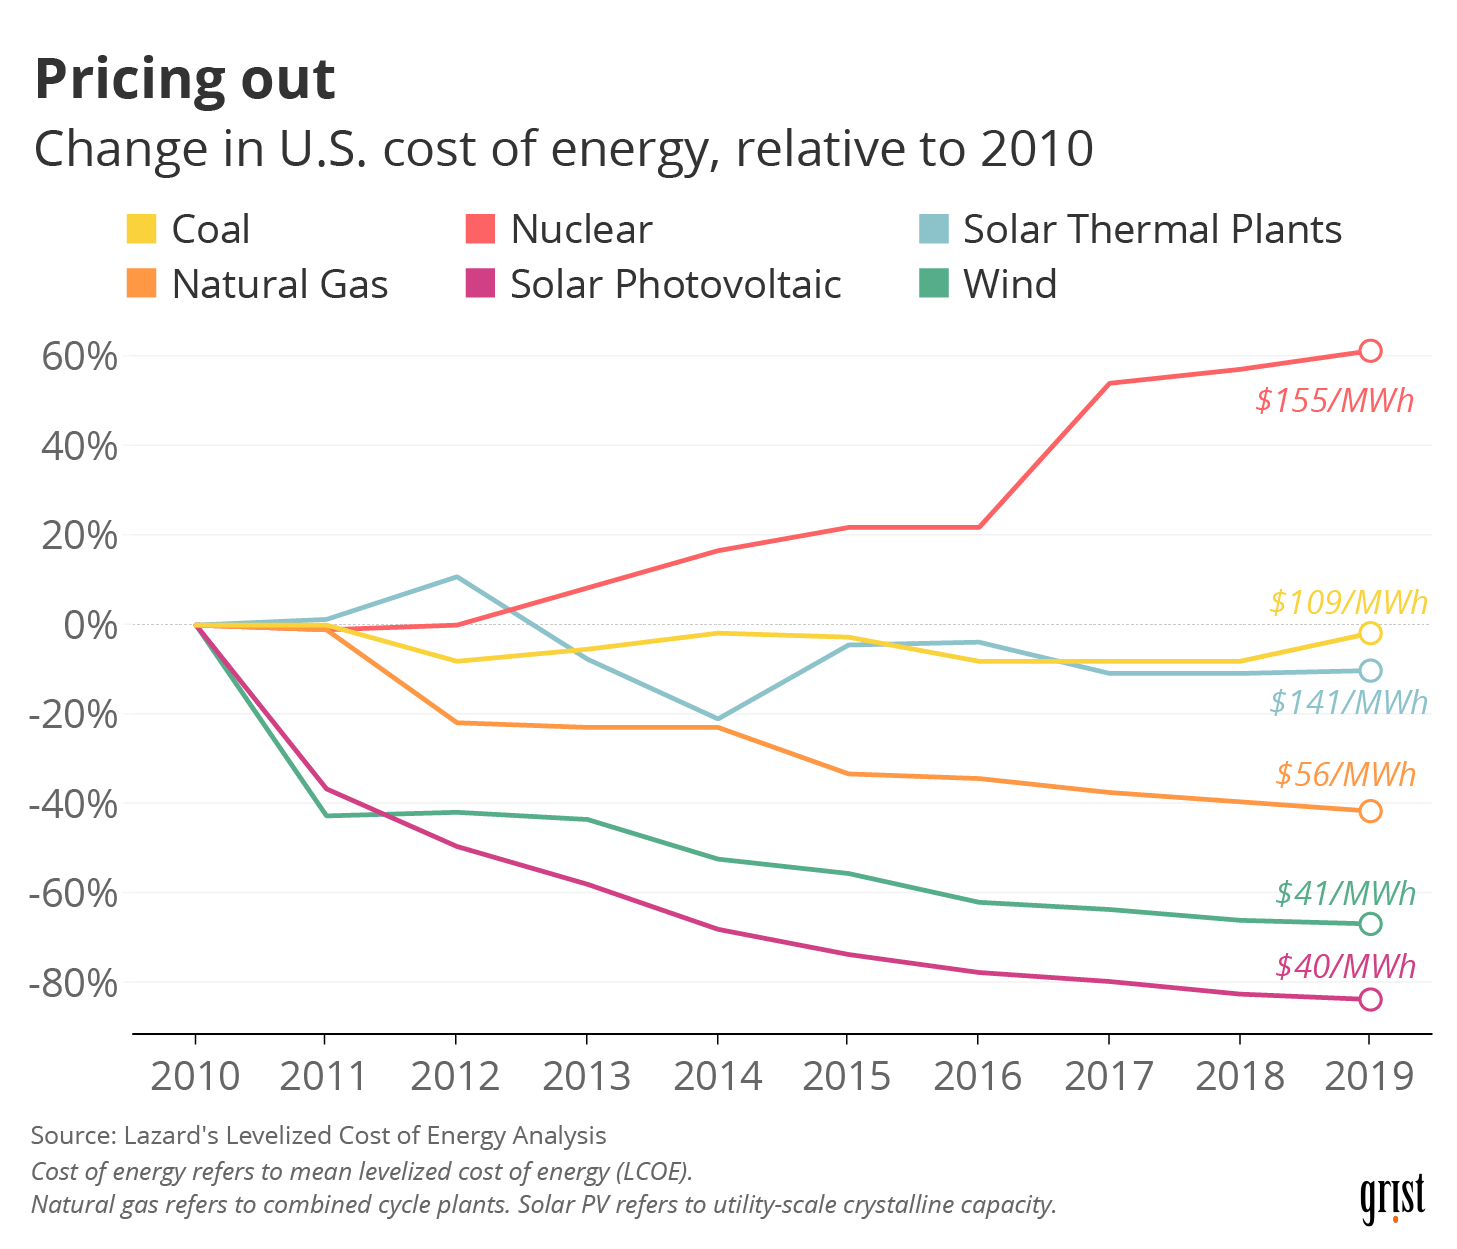 A chart showing the change in U.S. cost of energy, relative to 2010